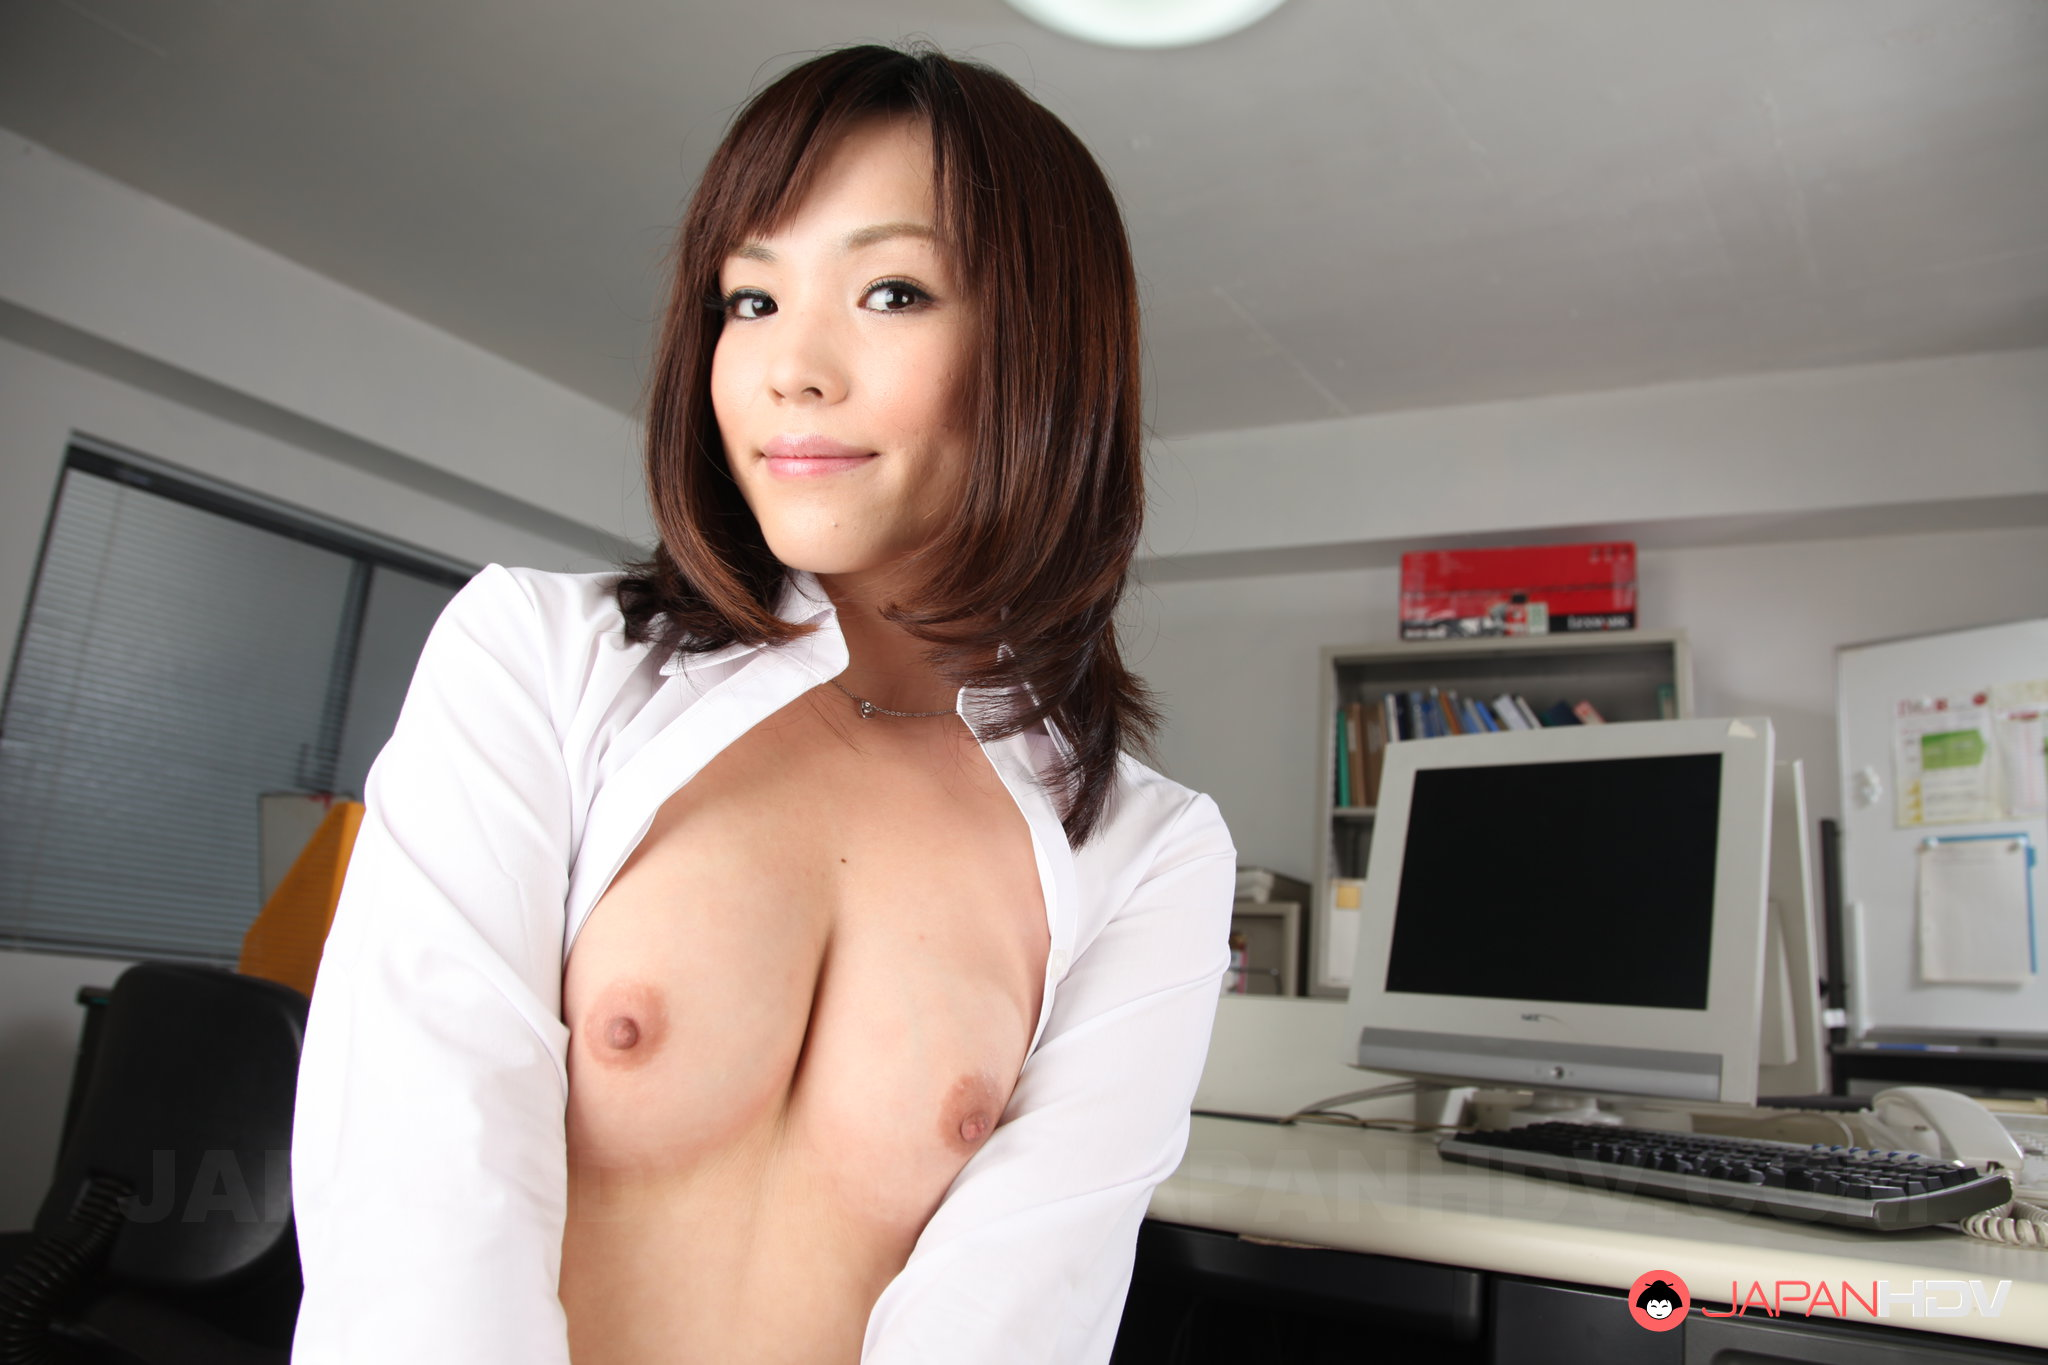 Hot Secretary Spread Her Legs